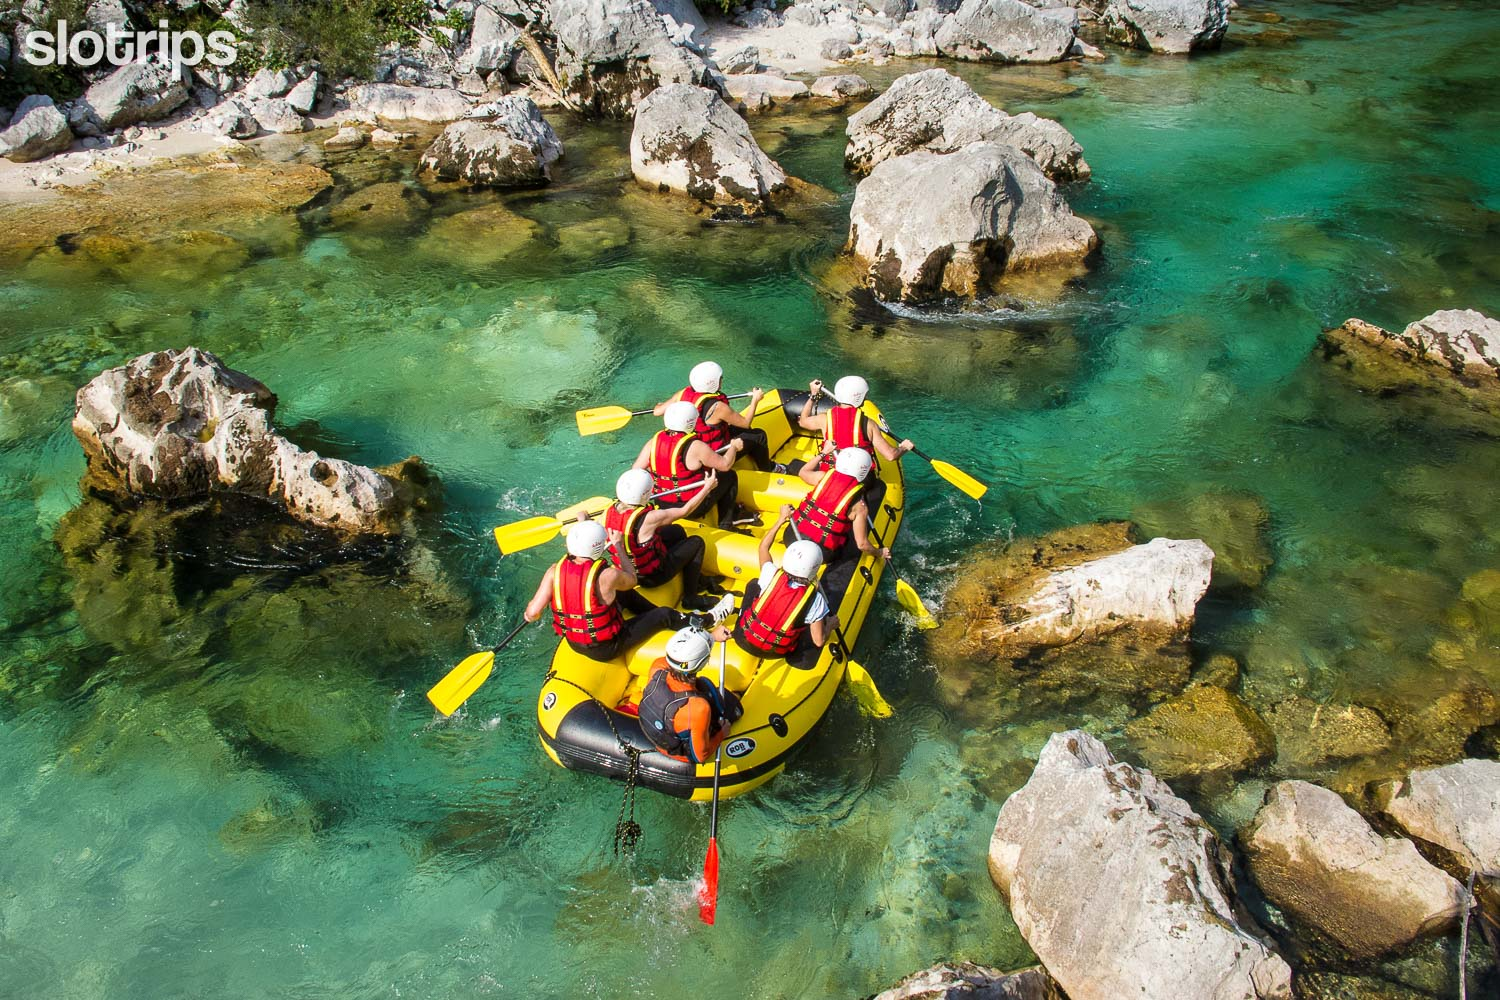 White water rafting on the Soca river in the Soca valley, Slovenia